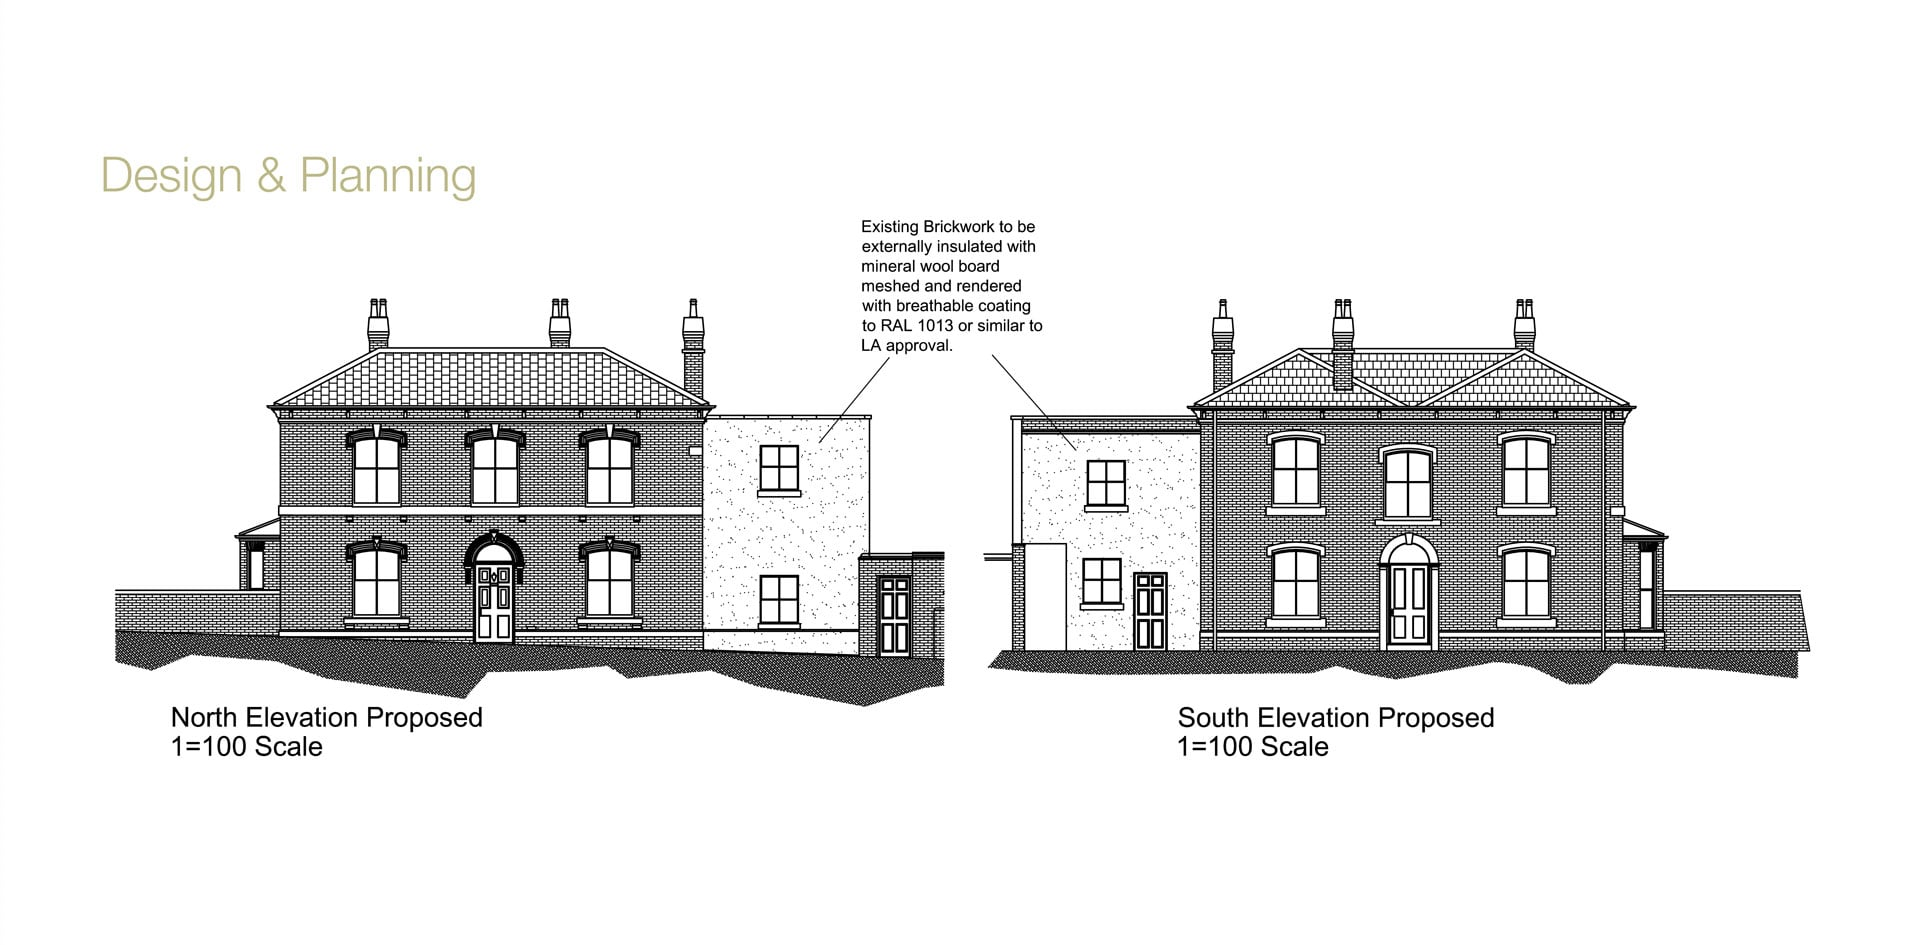 Battenhall Road - Design & Planning